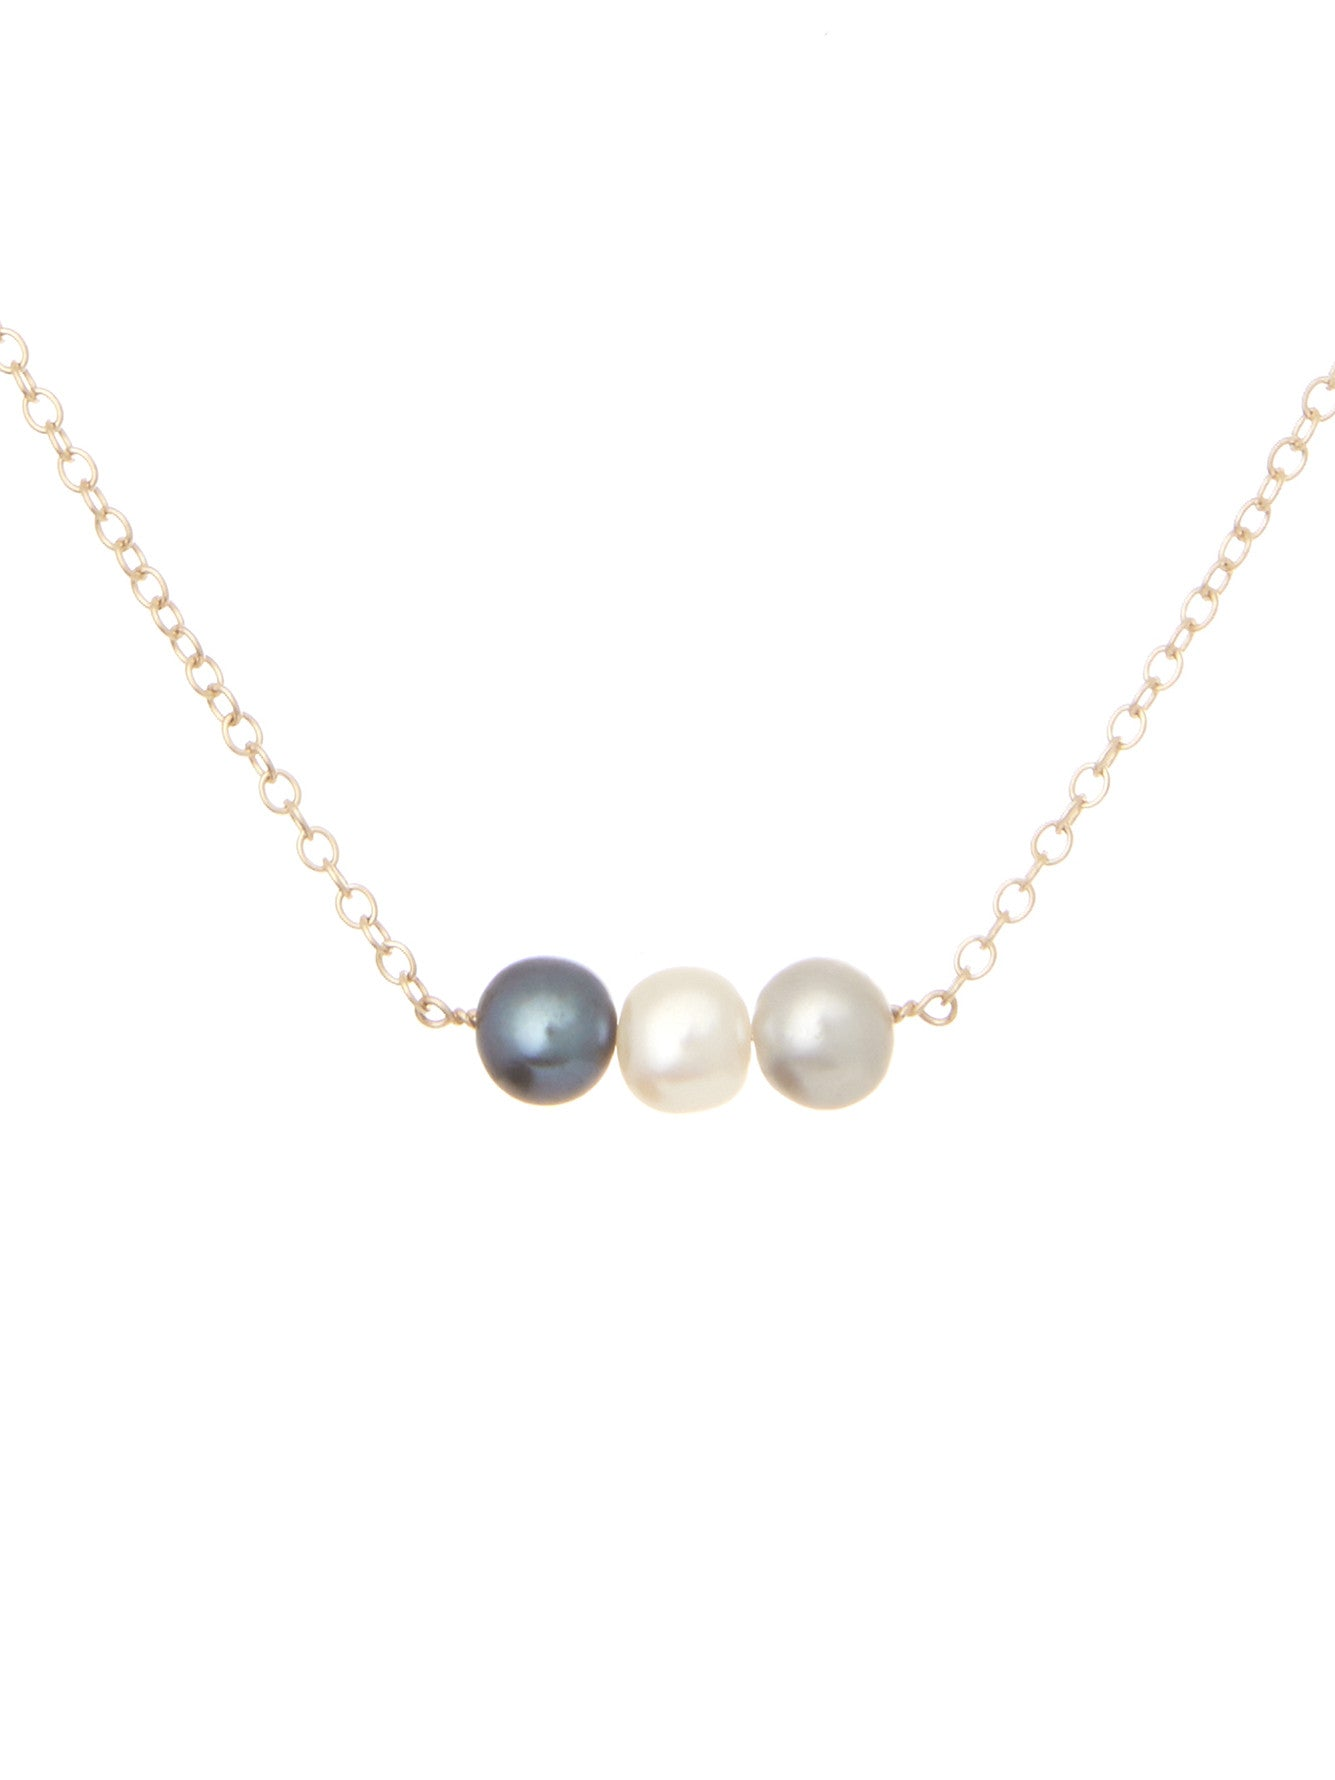 akogare necklace trading liz company single products pearl